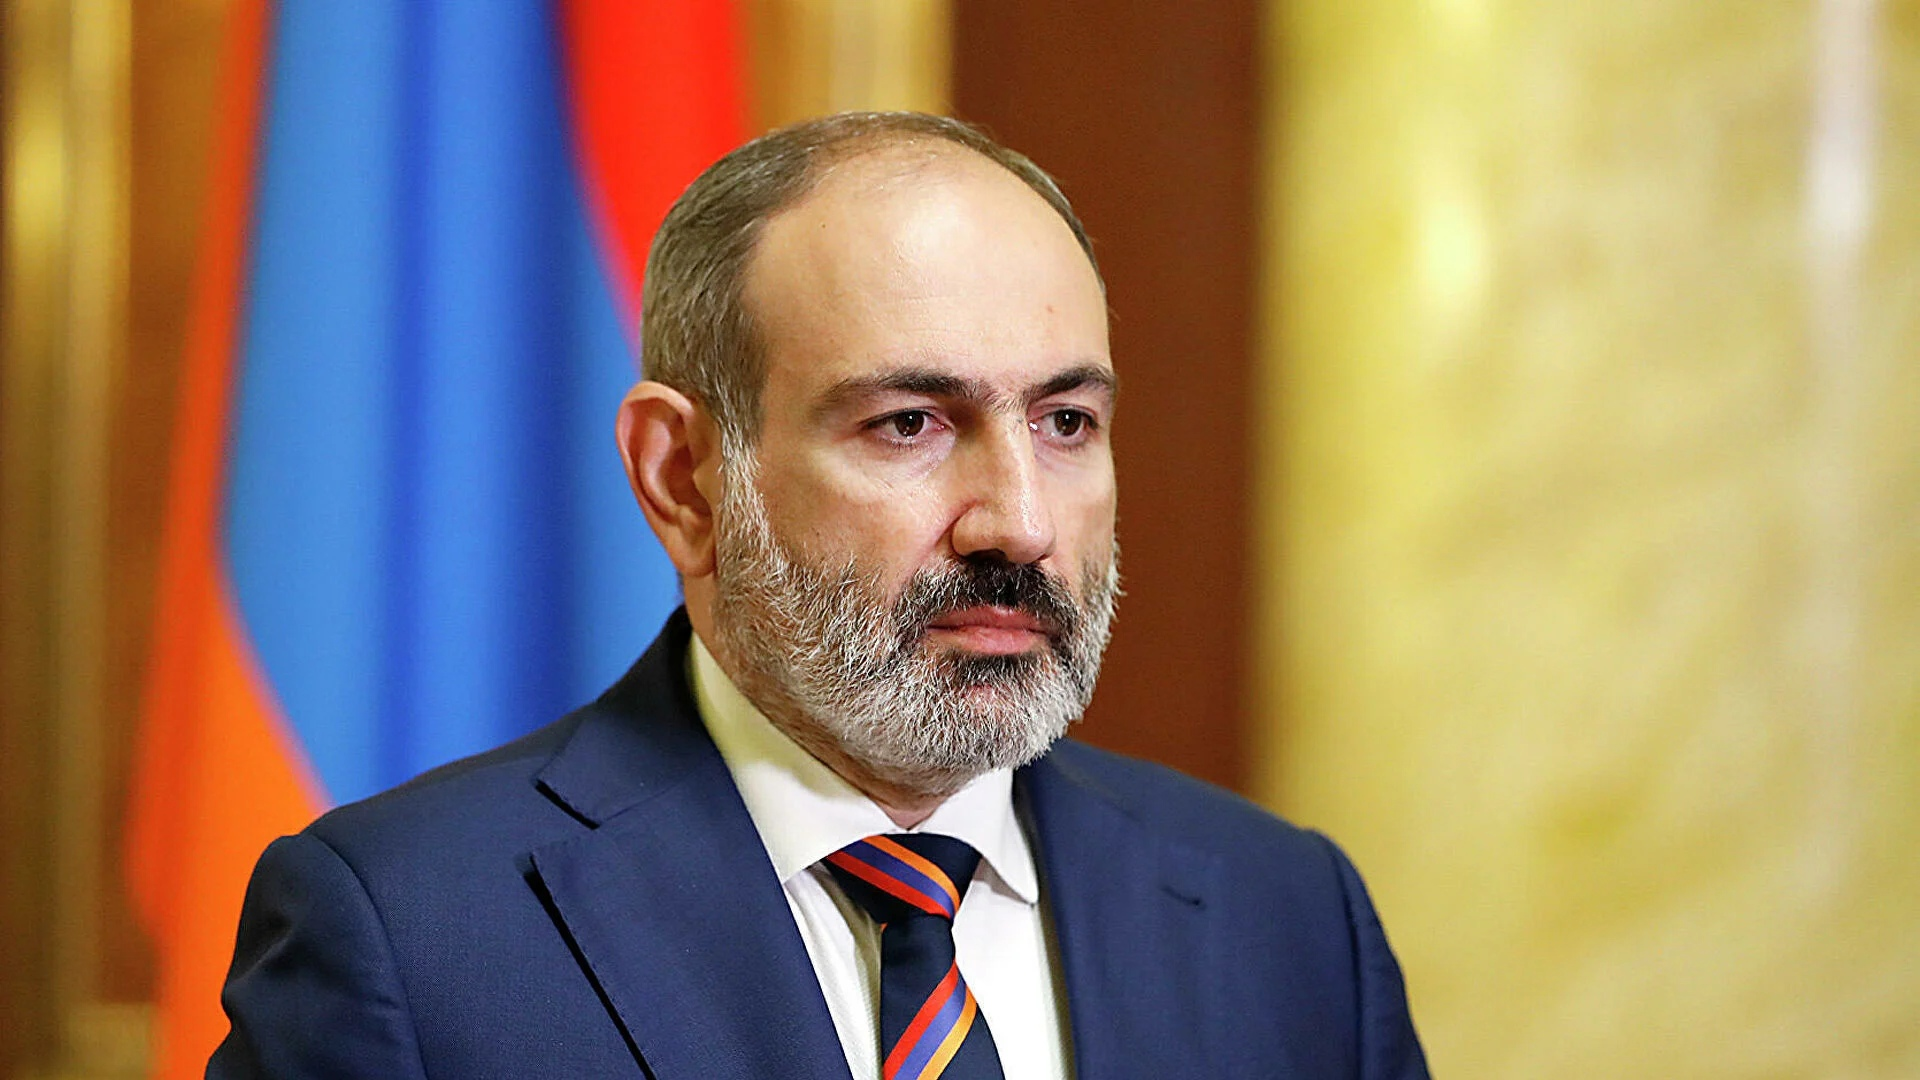 Pashinyan called the termination of Turkey's participation in the conflict a condition of the ceasefire in Karabakh